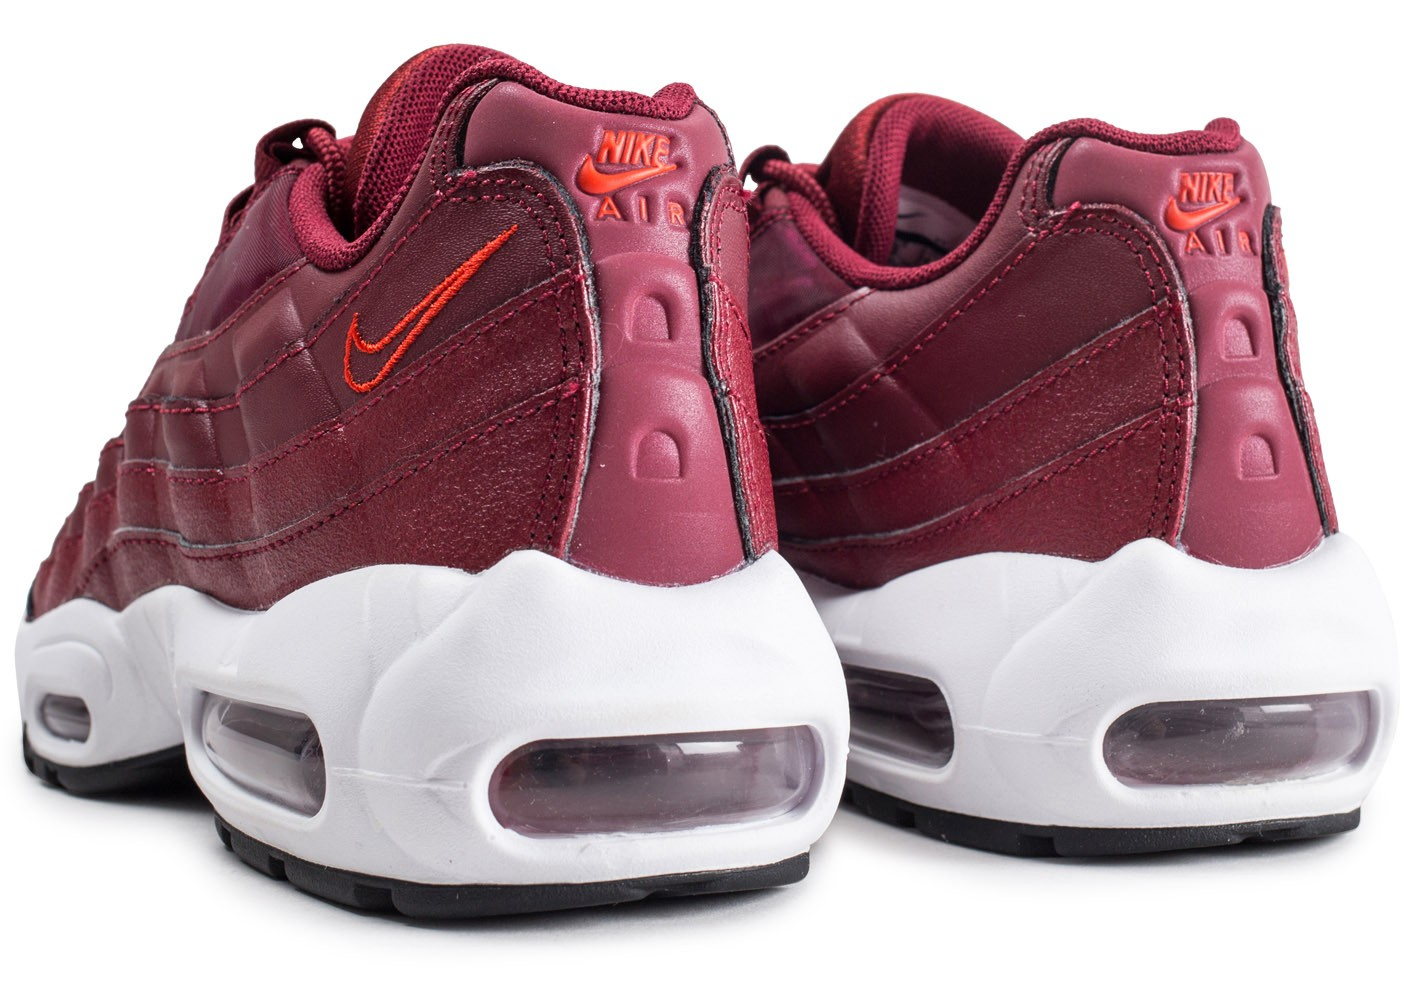 Nike Air Max 95 Habanero femme Chaussures Baskets femme